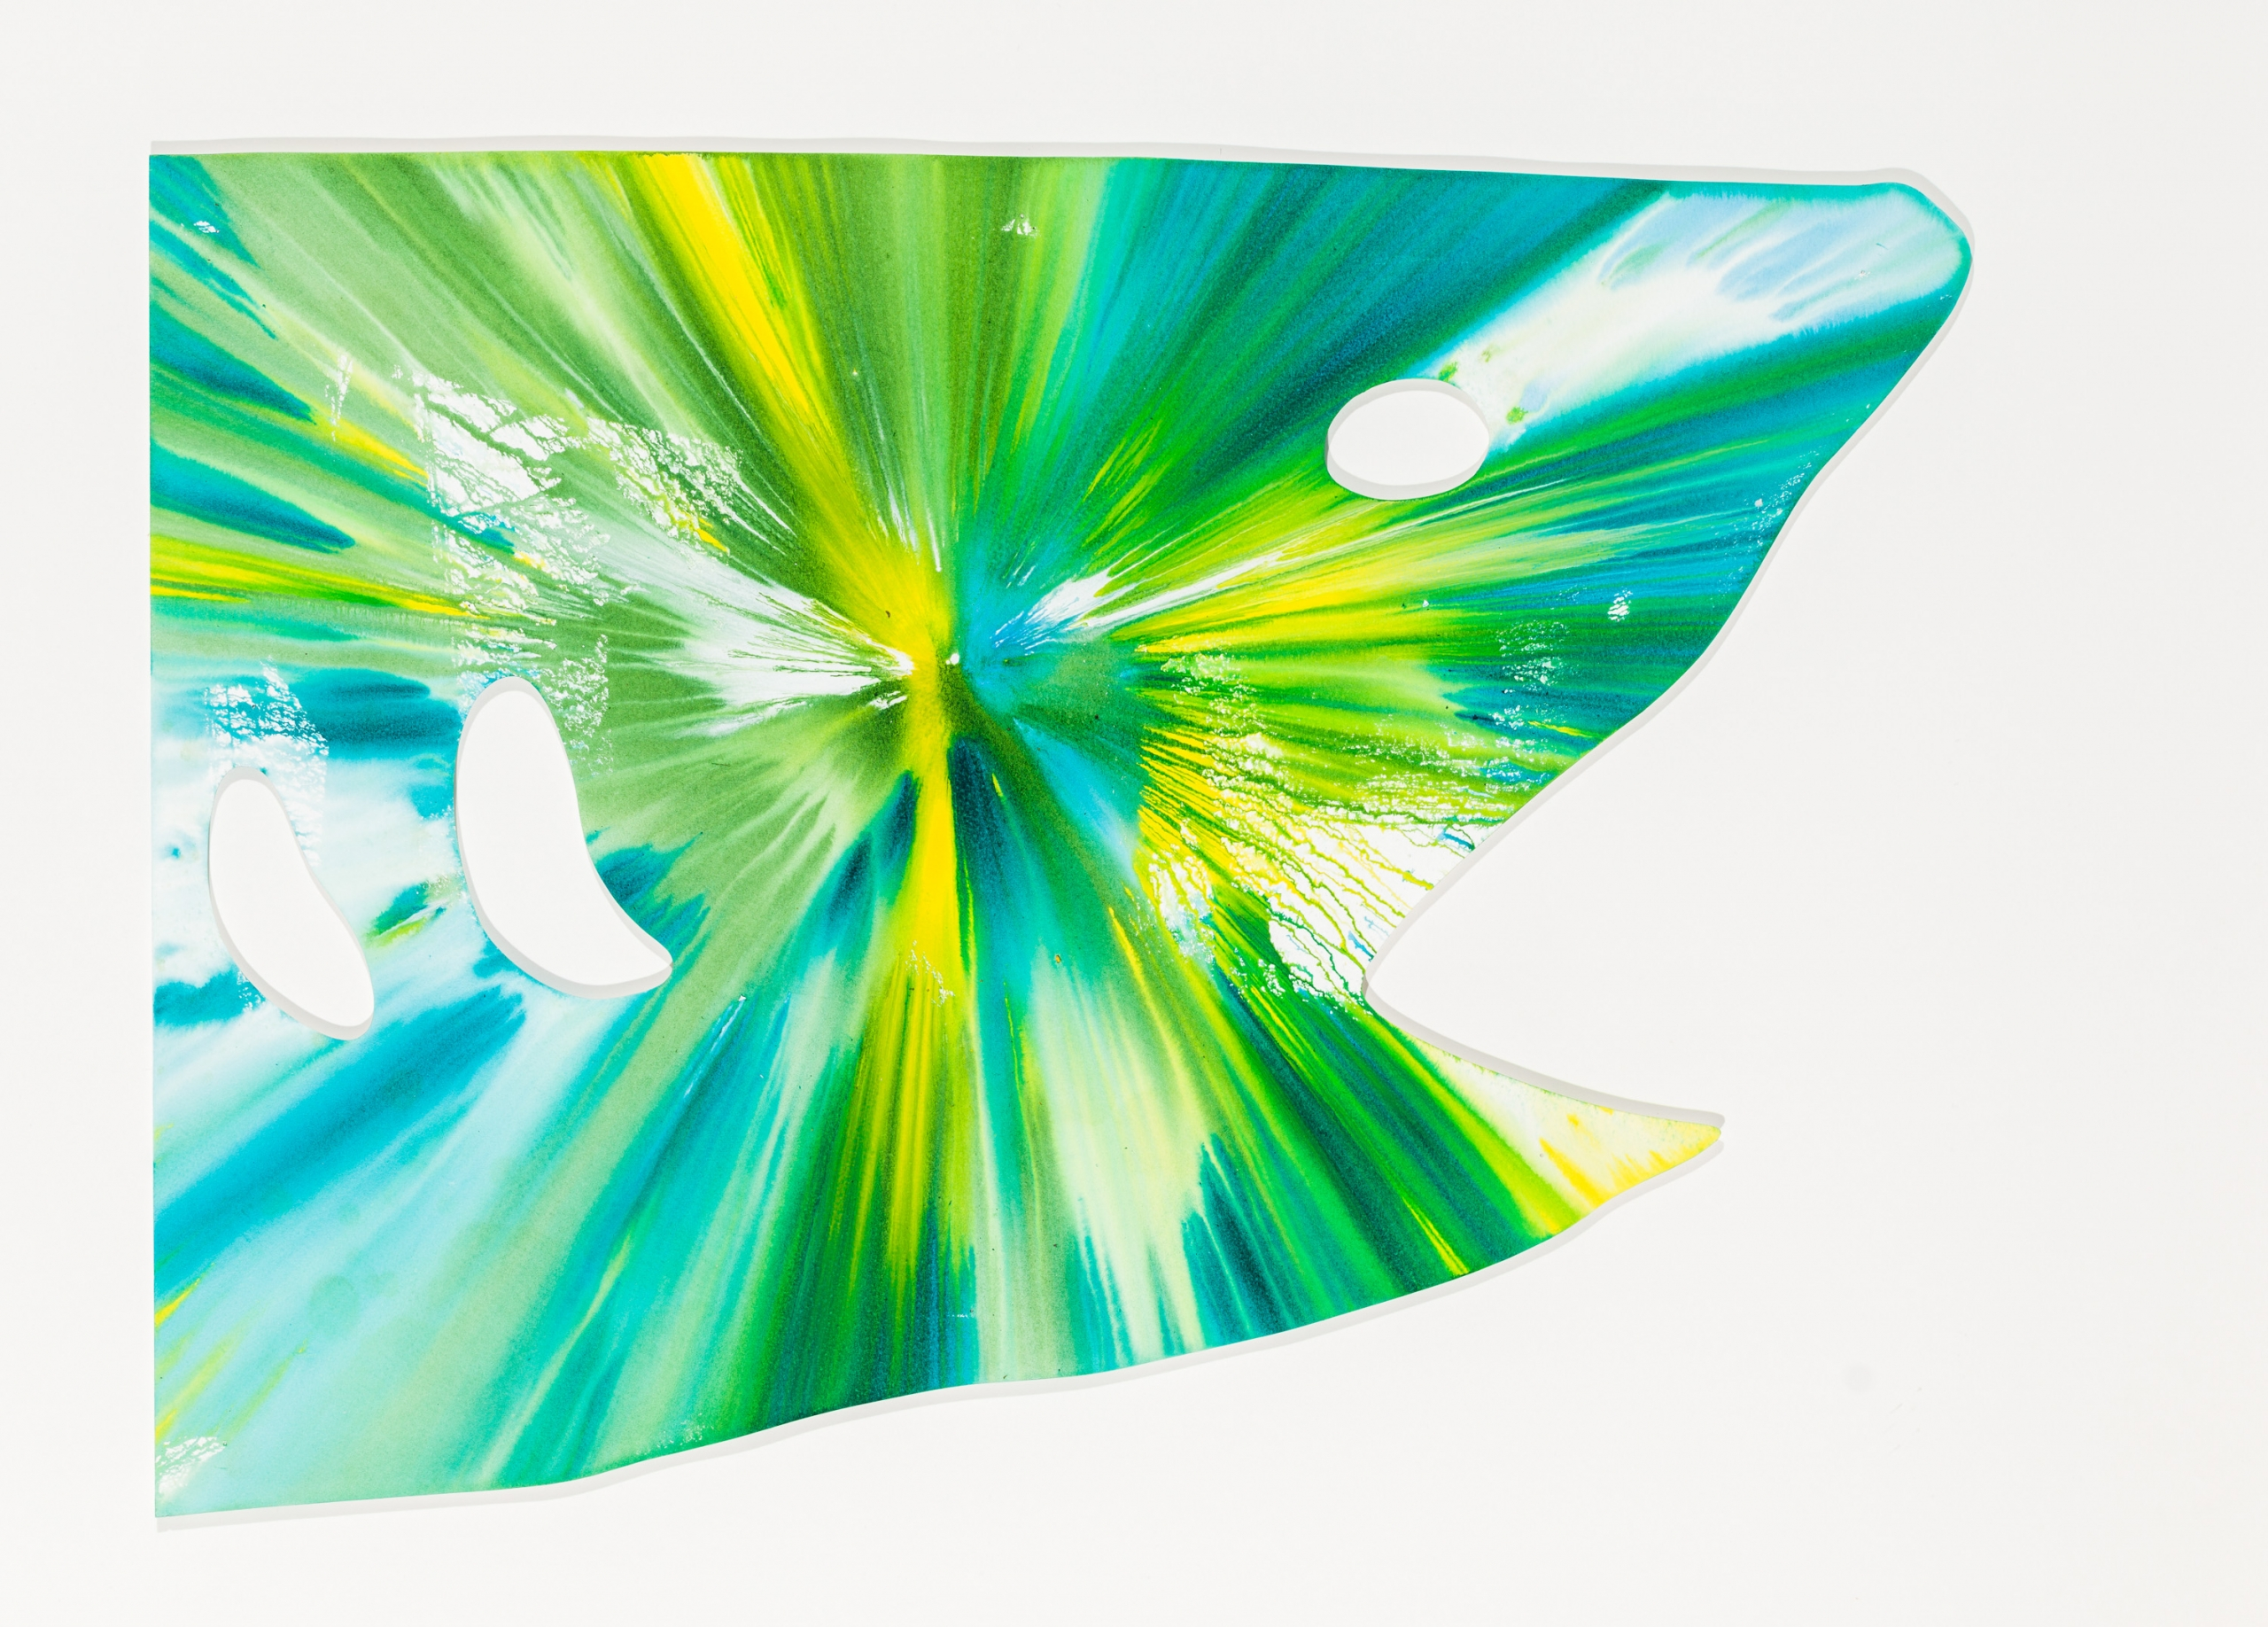 Damien Hirst, Shark Spin Painting